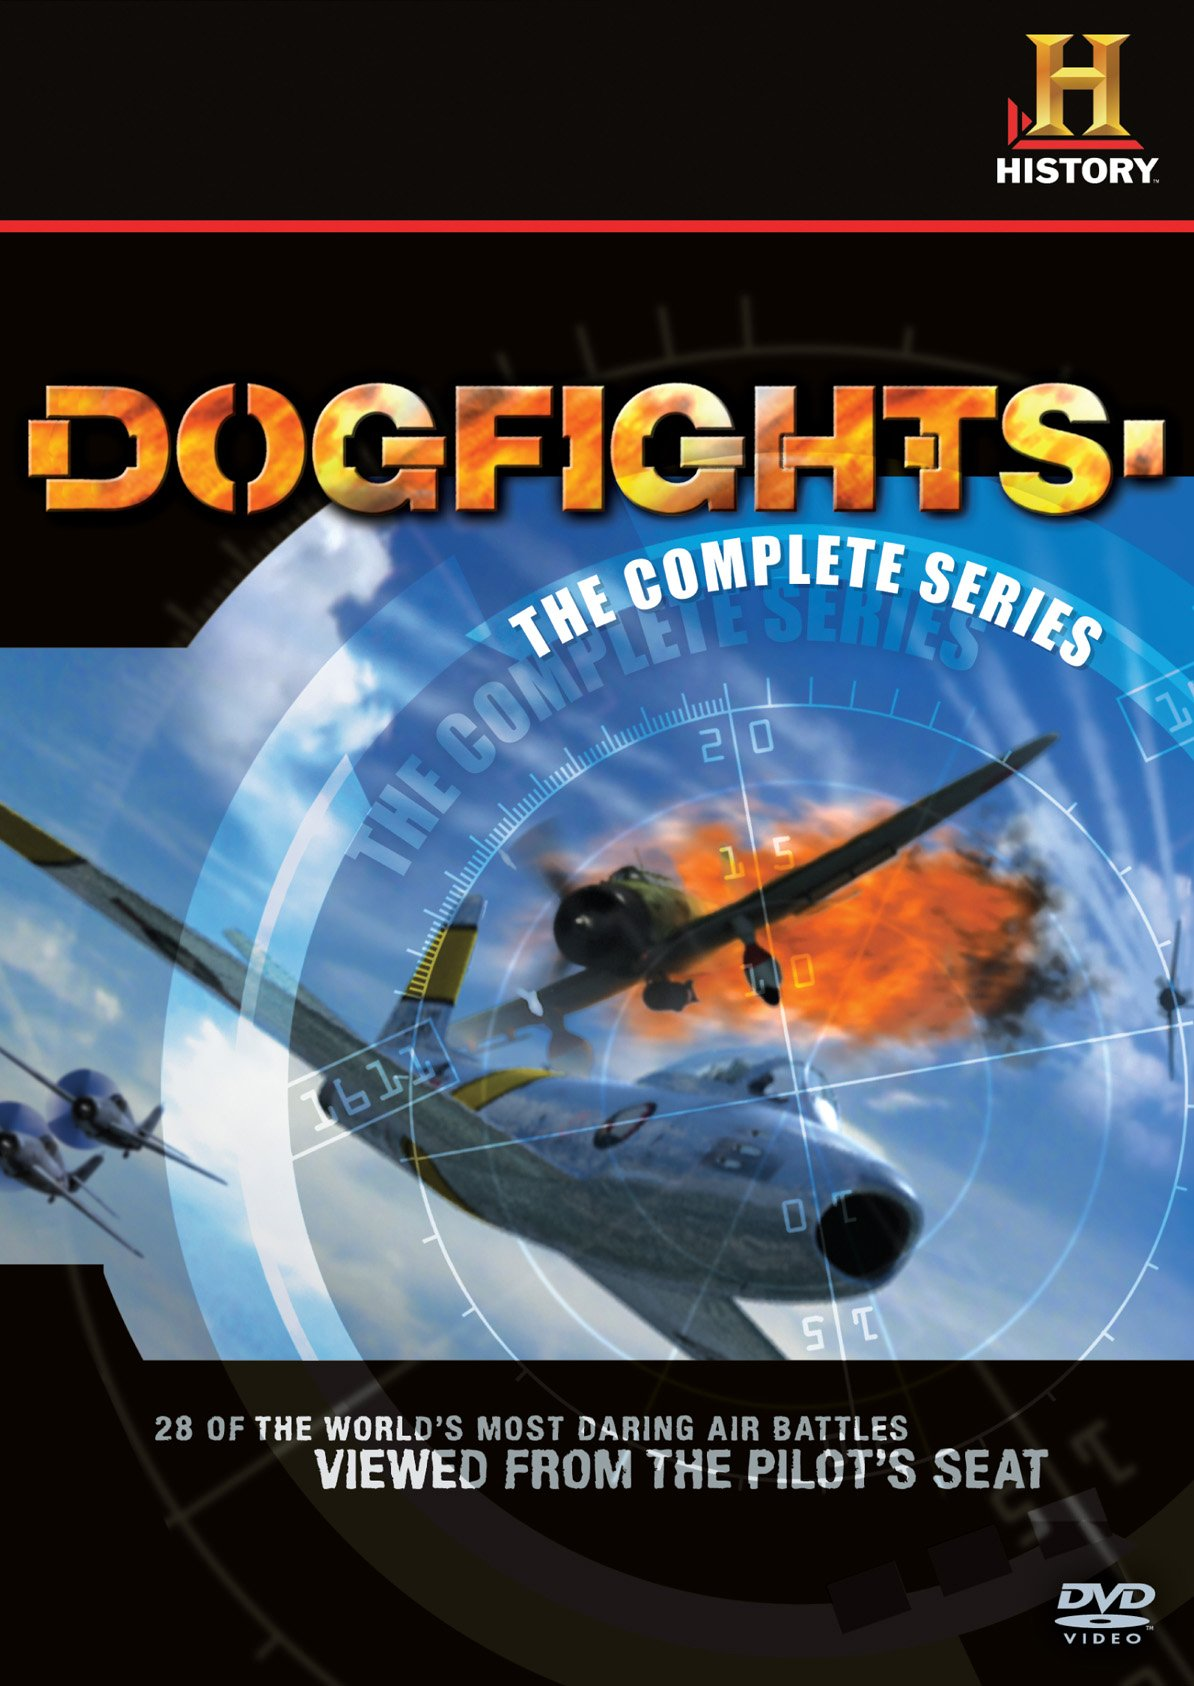 Dogfights: The Complete Series Megaset by A&E